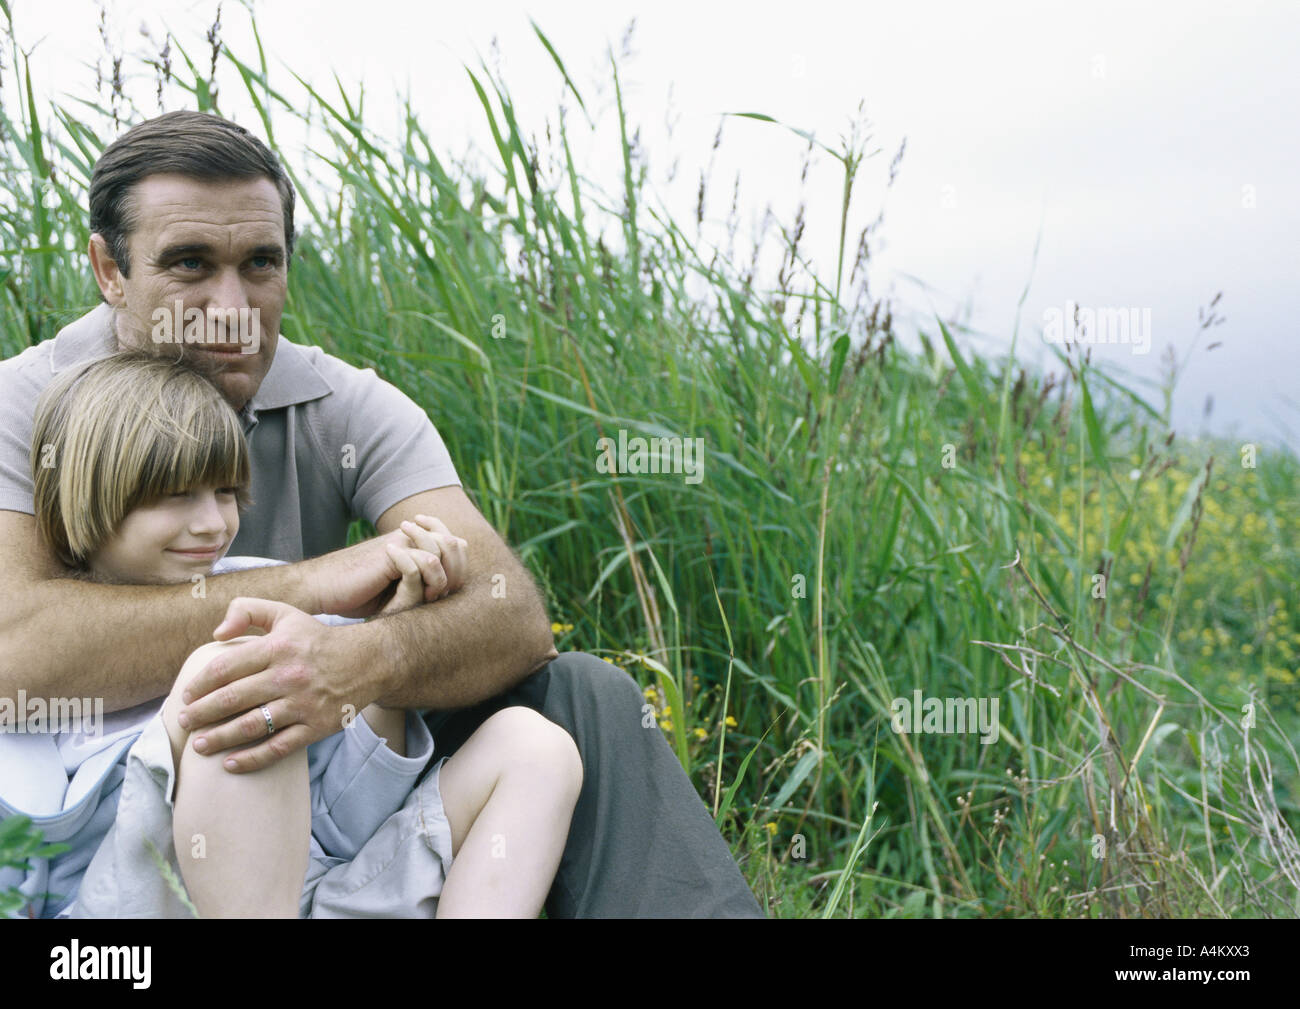 Man sitting on grass with arms around son Stock Photo